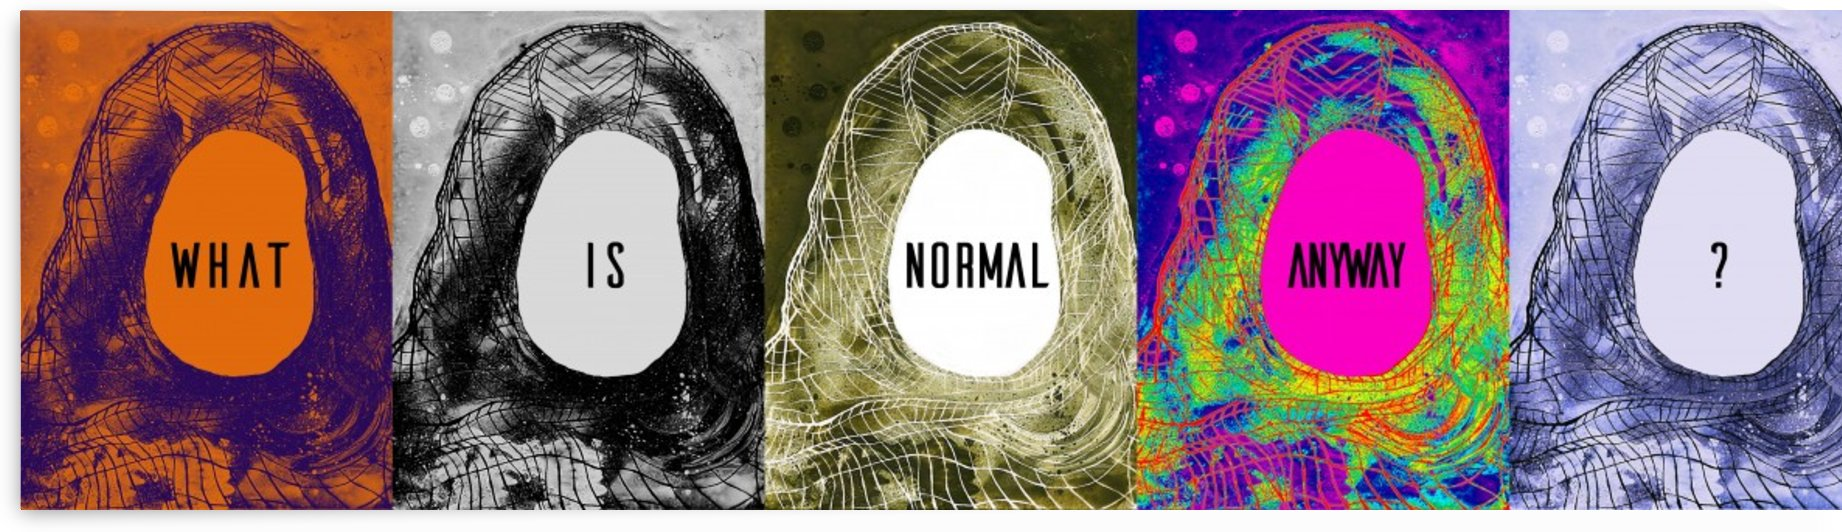 What Is Normal Anyway? by Rana Obaid